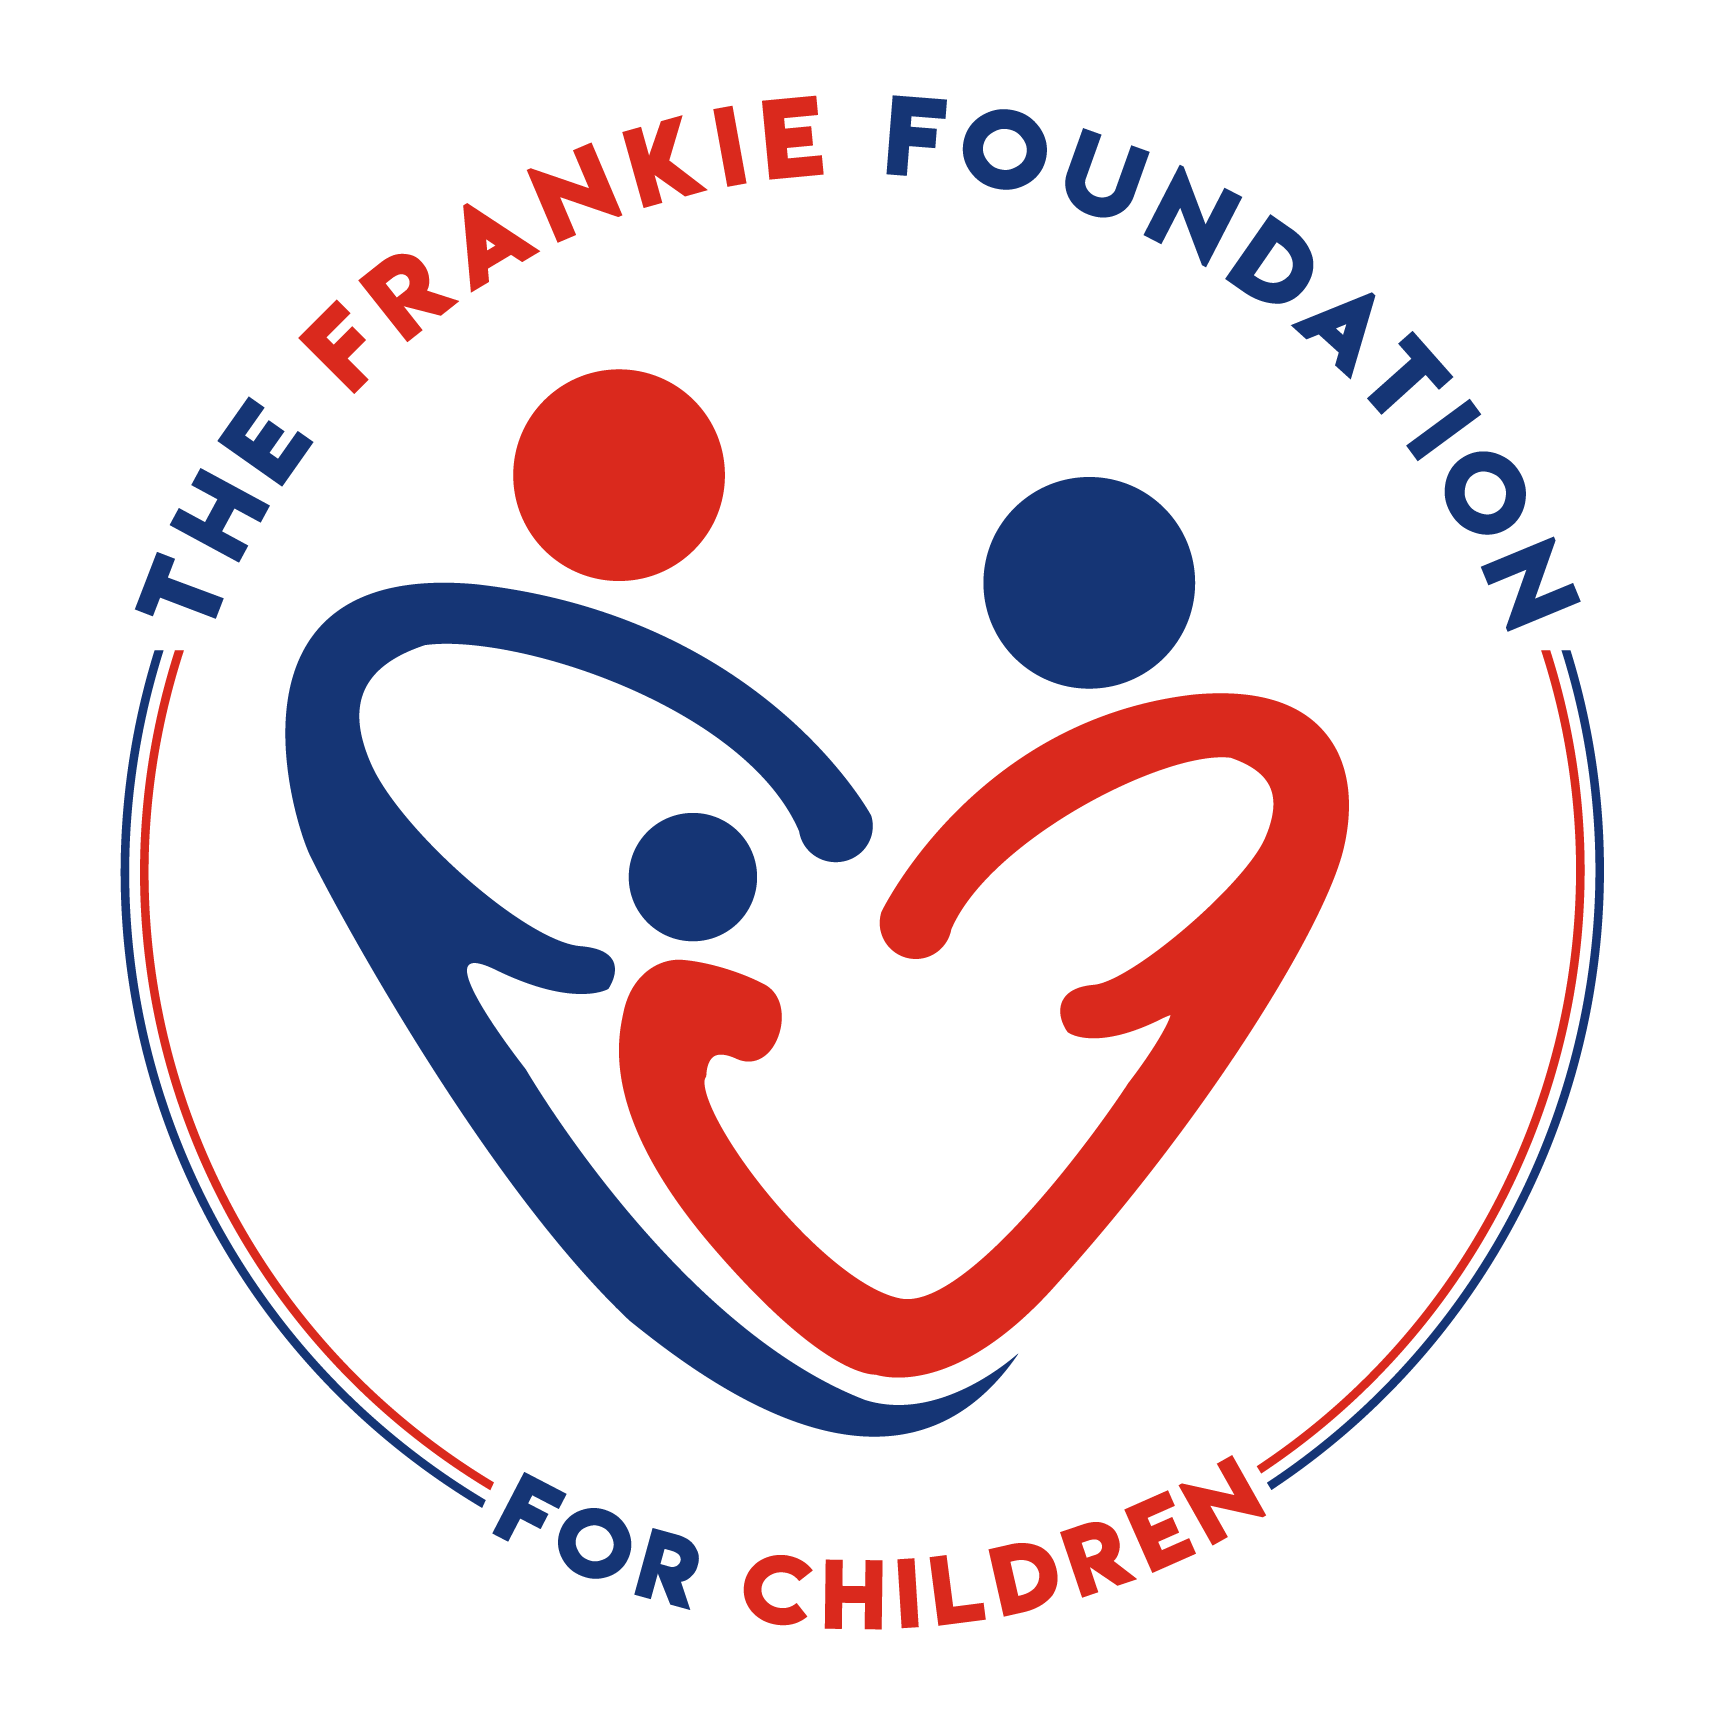 The Frankie Foundation for Children